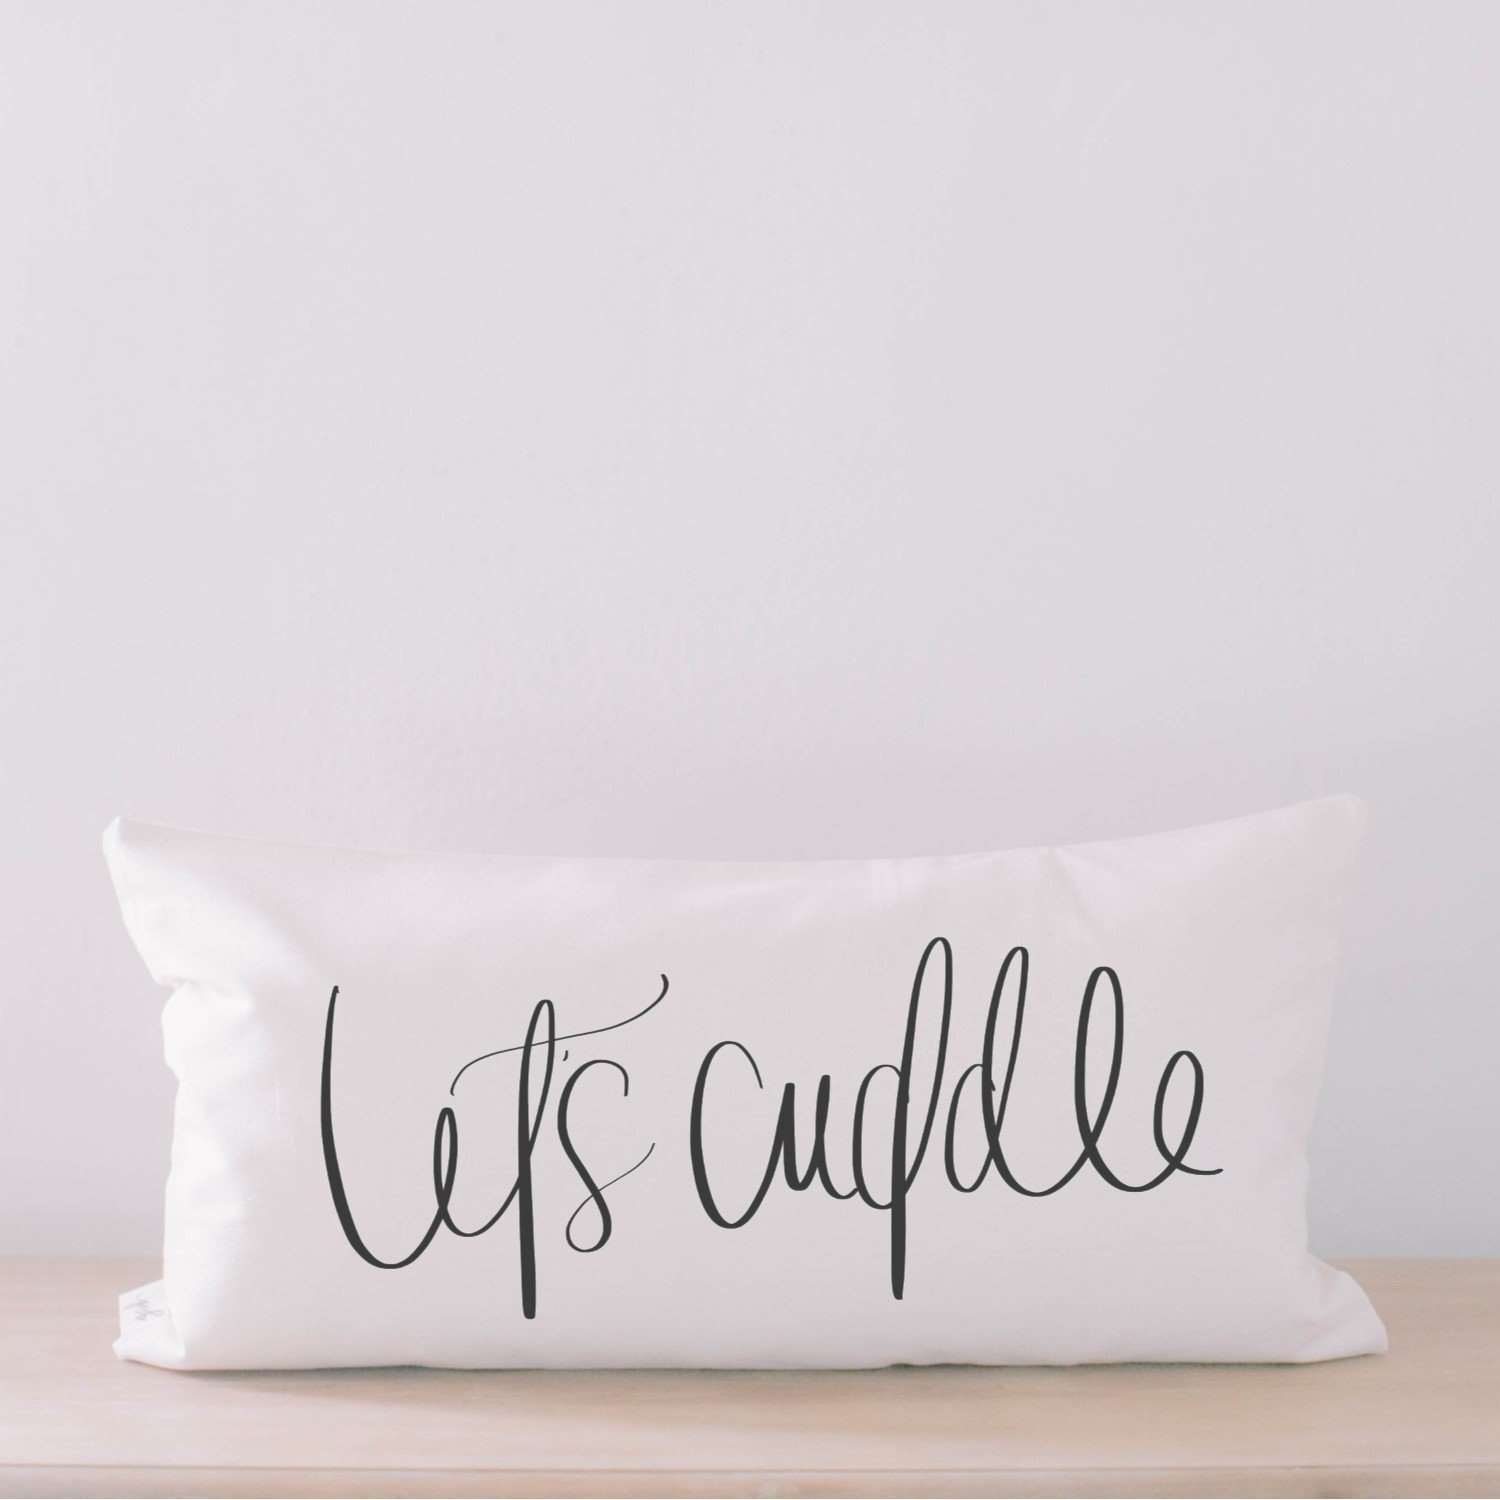 Lumbar Pillow - Let's Cuddle, Handmade in the USA, calligraphy, home decor, wedding gift, engagement present, housewarming gift, cushion cover, throw pillow